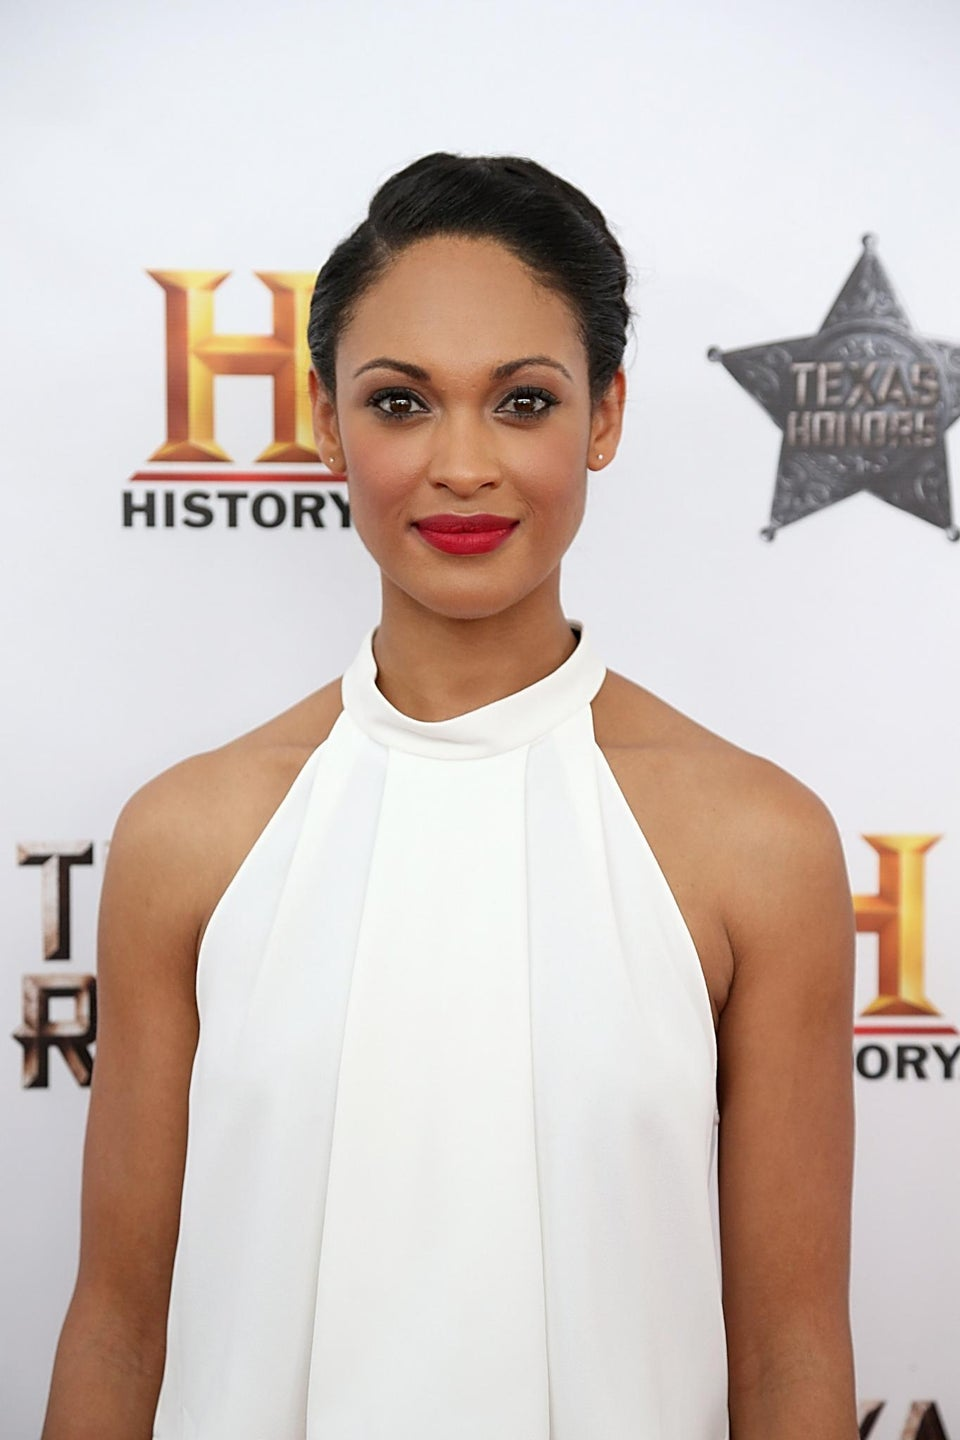 7 Things To Know About 'Texas Rising' Star Cynthia Addai-Robinson